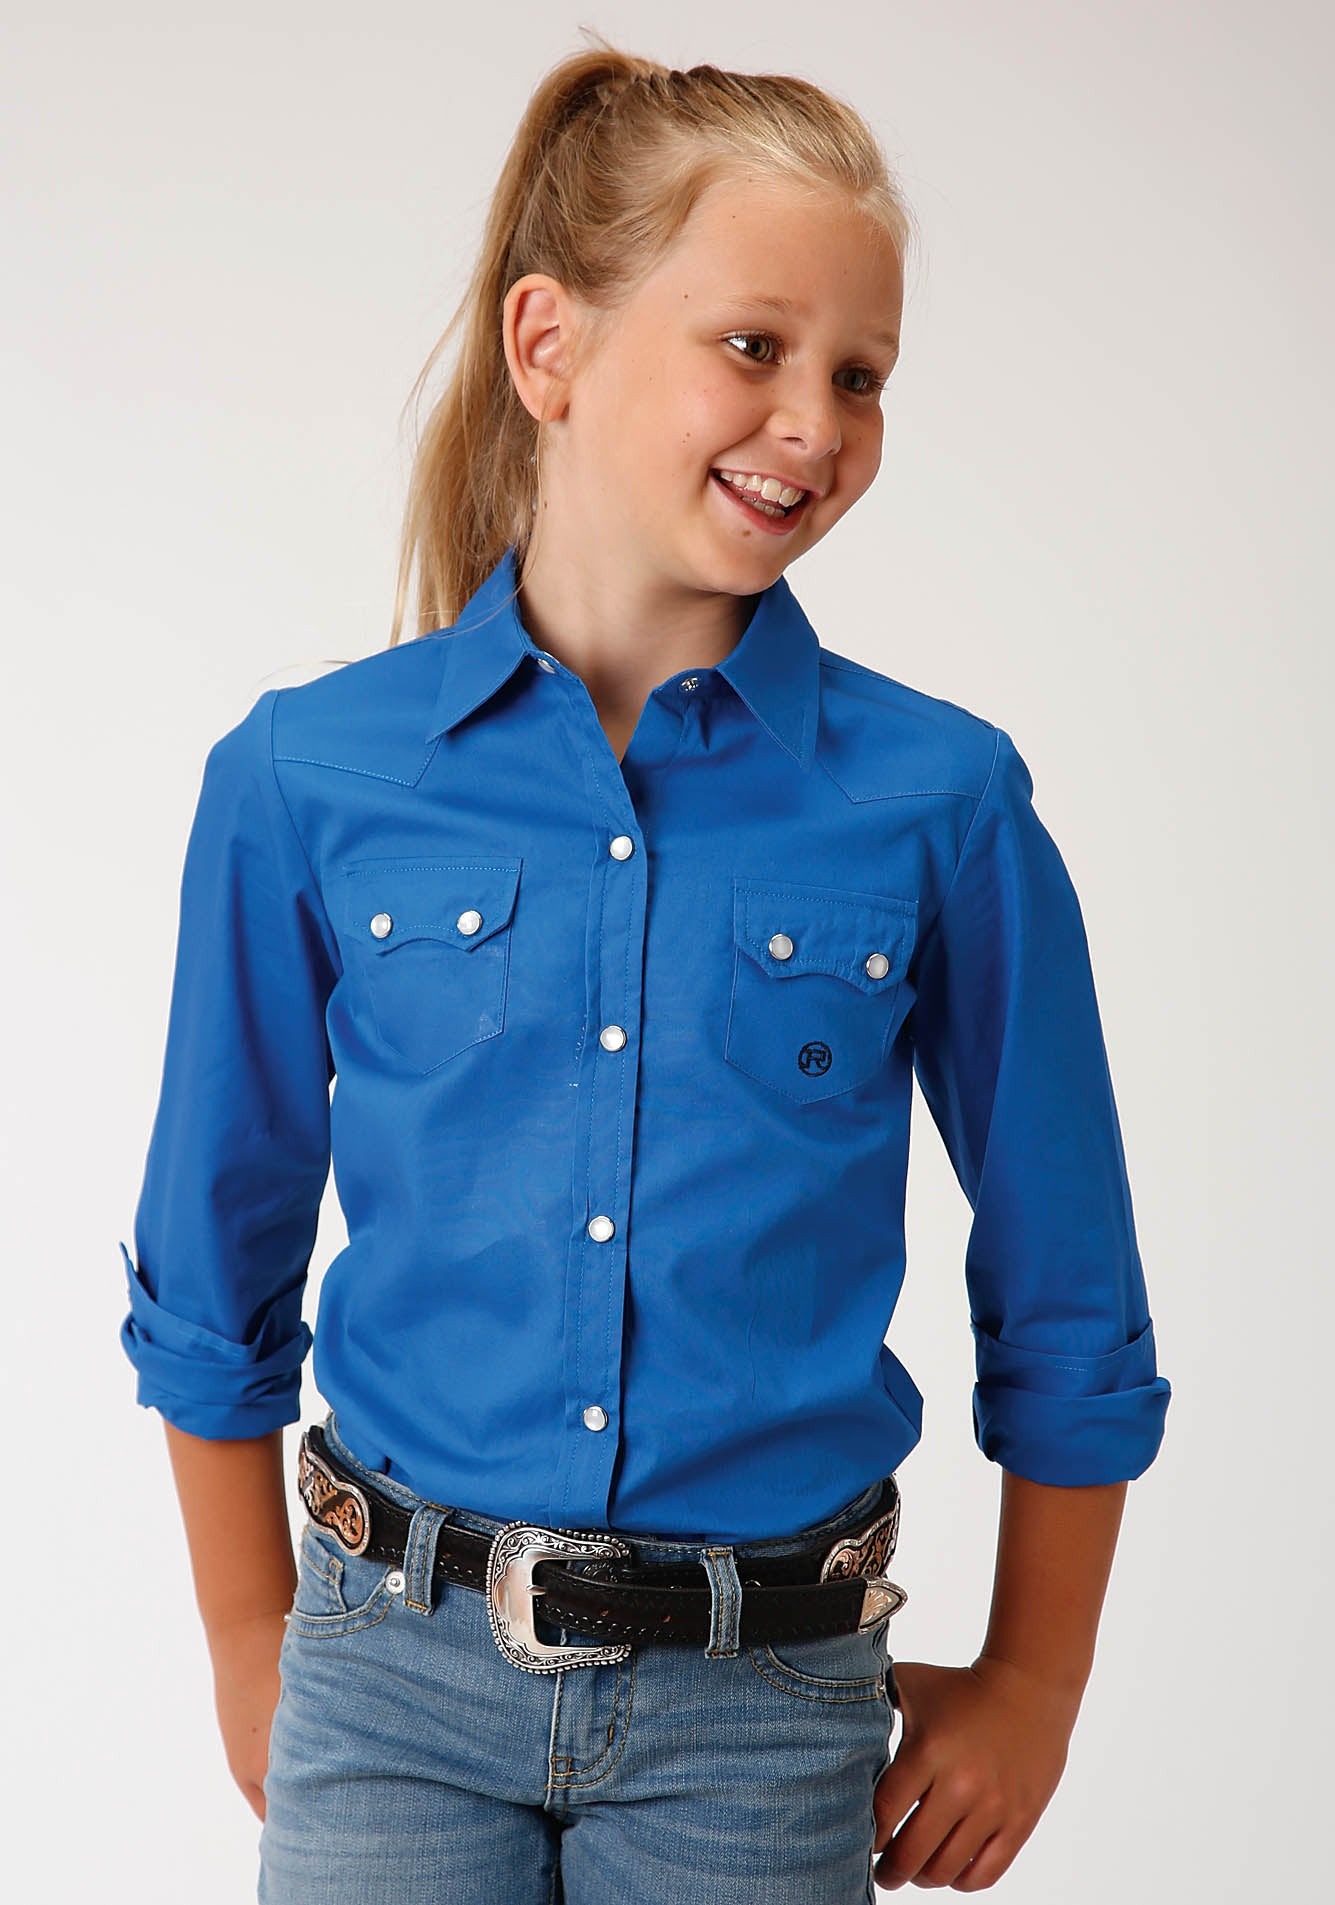 ROPER GIRLS BLUE 00227 SOLID POPLIN - ROYAL GIRL'S AMARILLO COLLECTION - BLUE RIDGE LONG SLEEVE